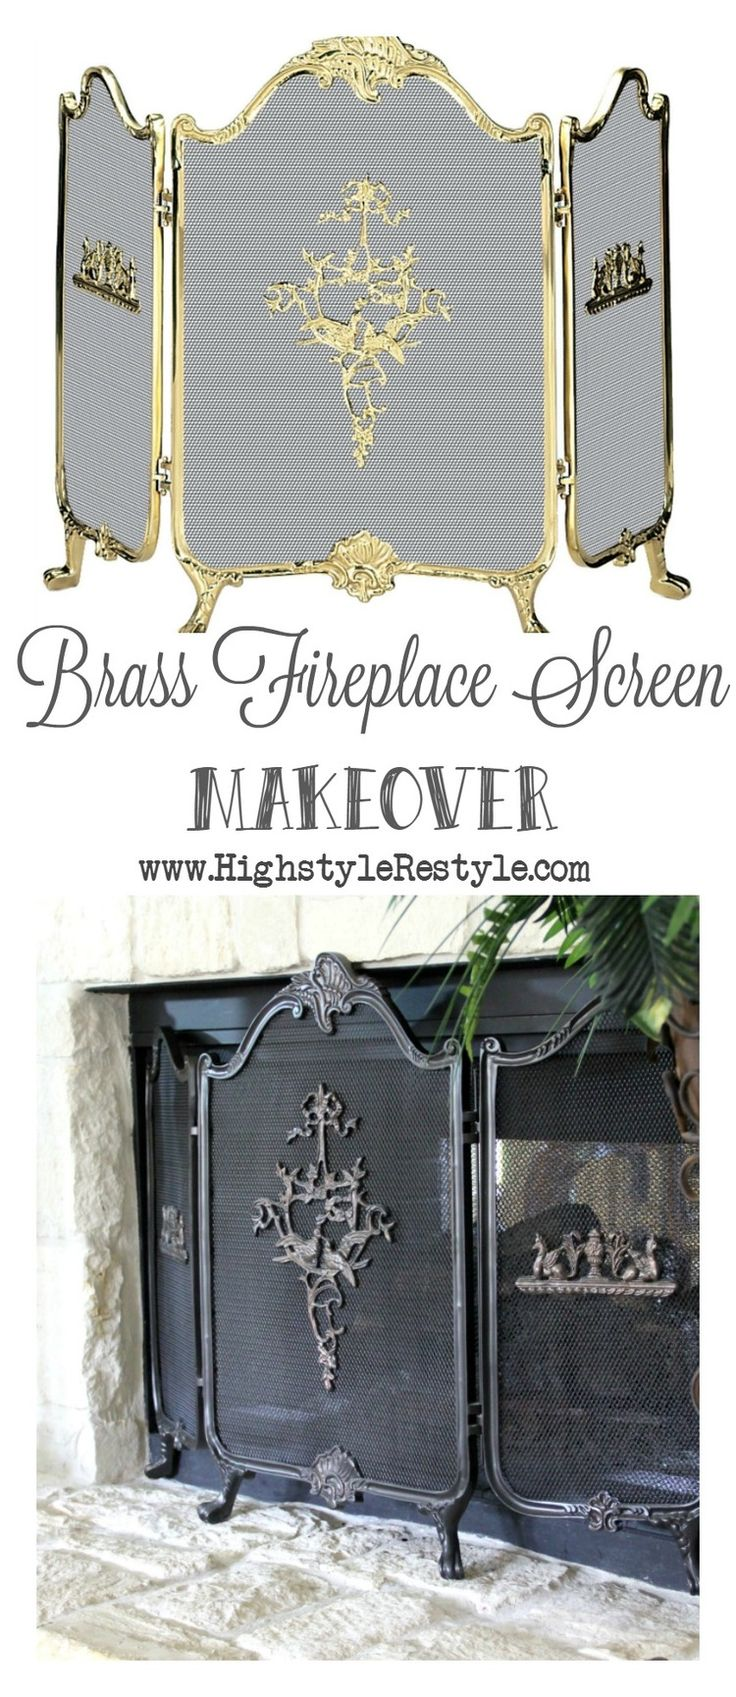 Easy, Brass Fireplace Screen Makeover — Highstyle ReStyle  http://www.highstylerestyle.com/blog/brass-fireplace-screen-makeover